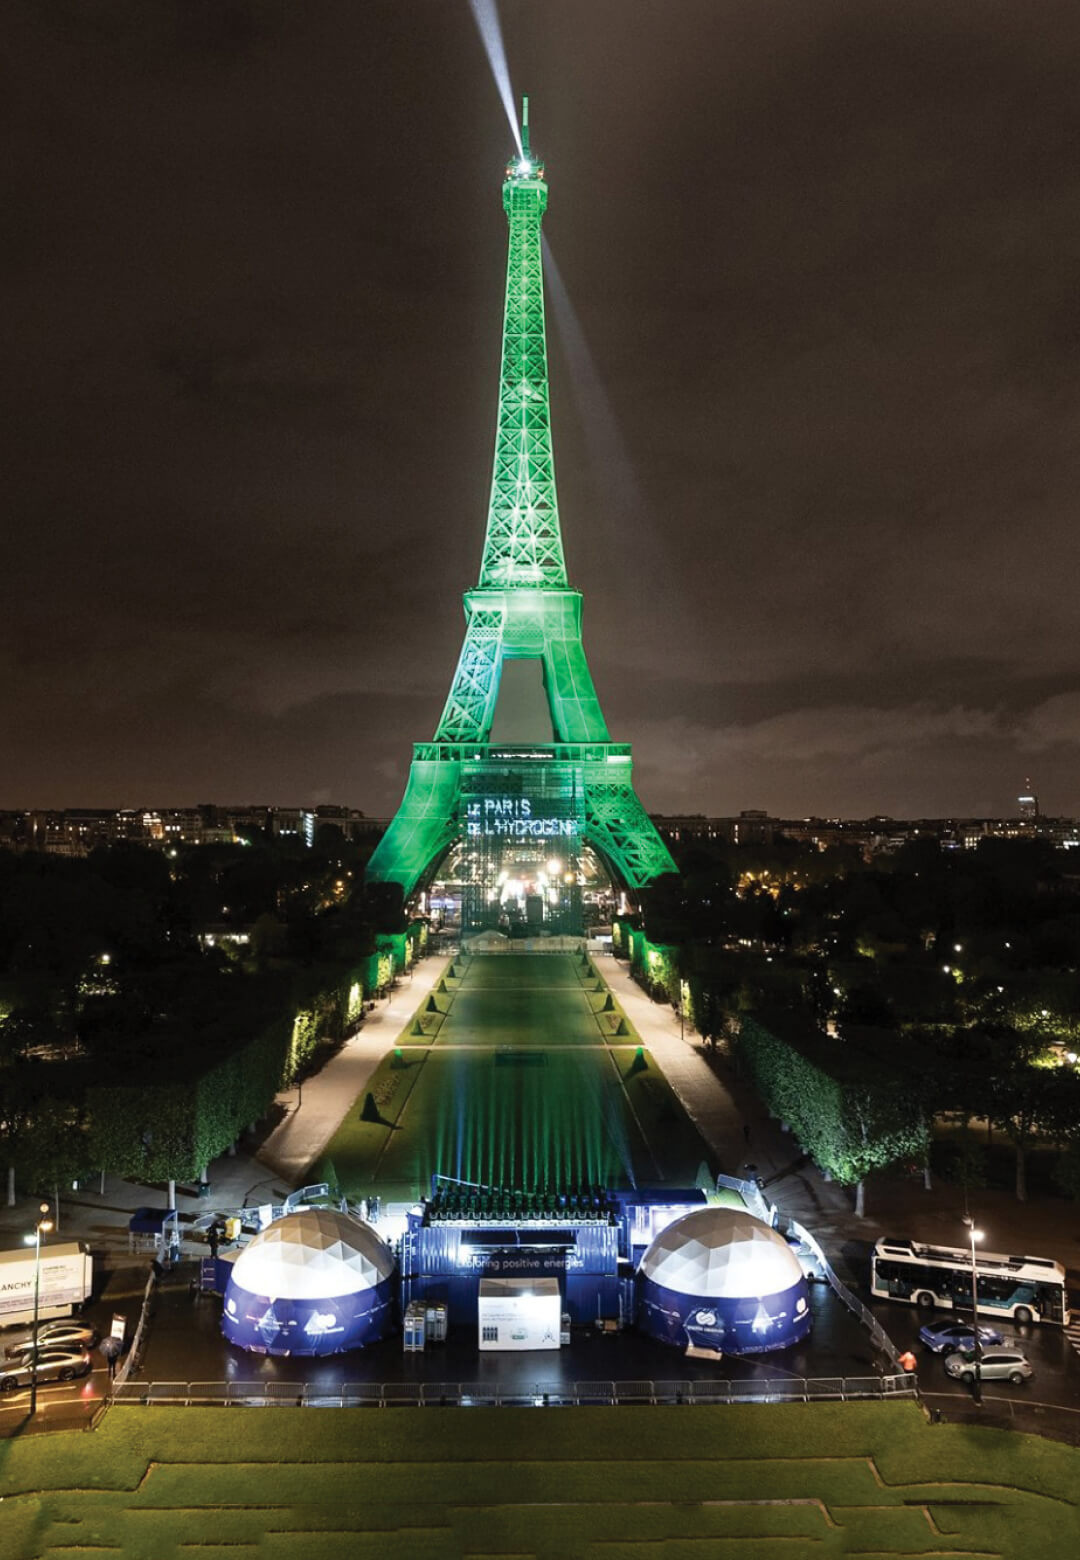 EODev lights up the Eiffel Tower in a light show powered by their emissions-free electro-hydrogen generator | EODev Lights up Eiffel Tower | STIRworld